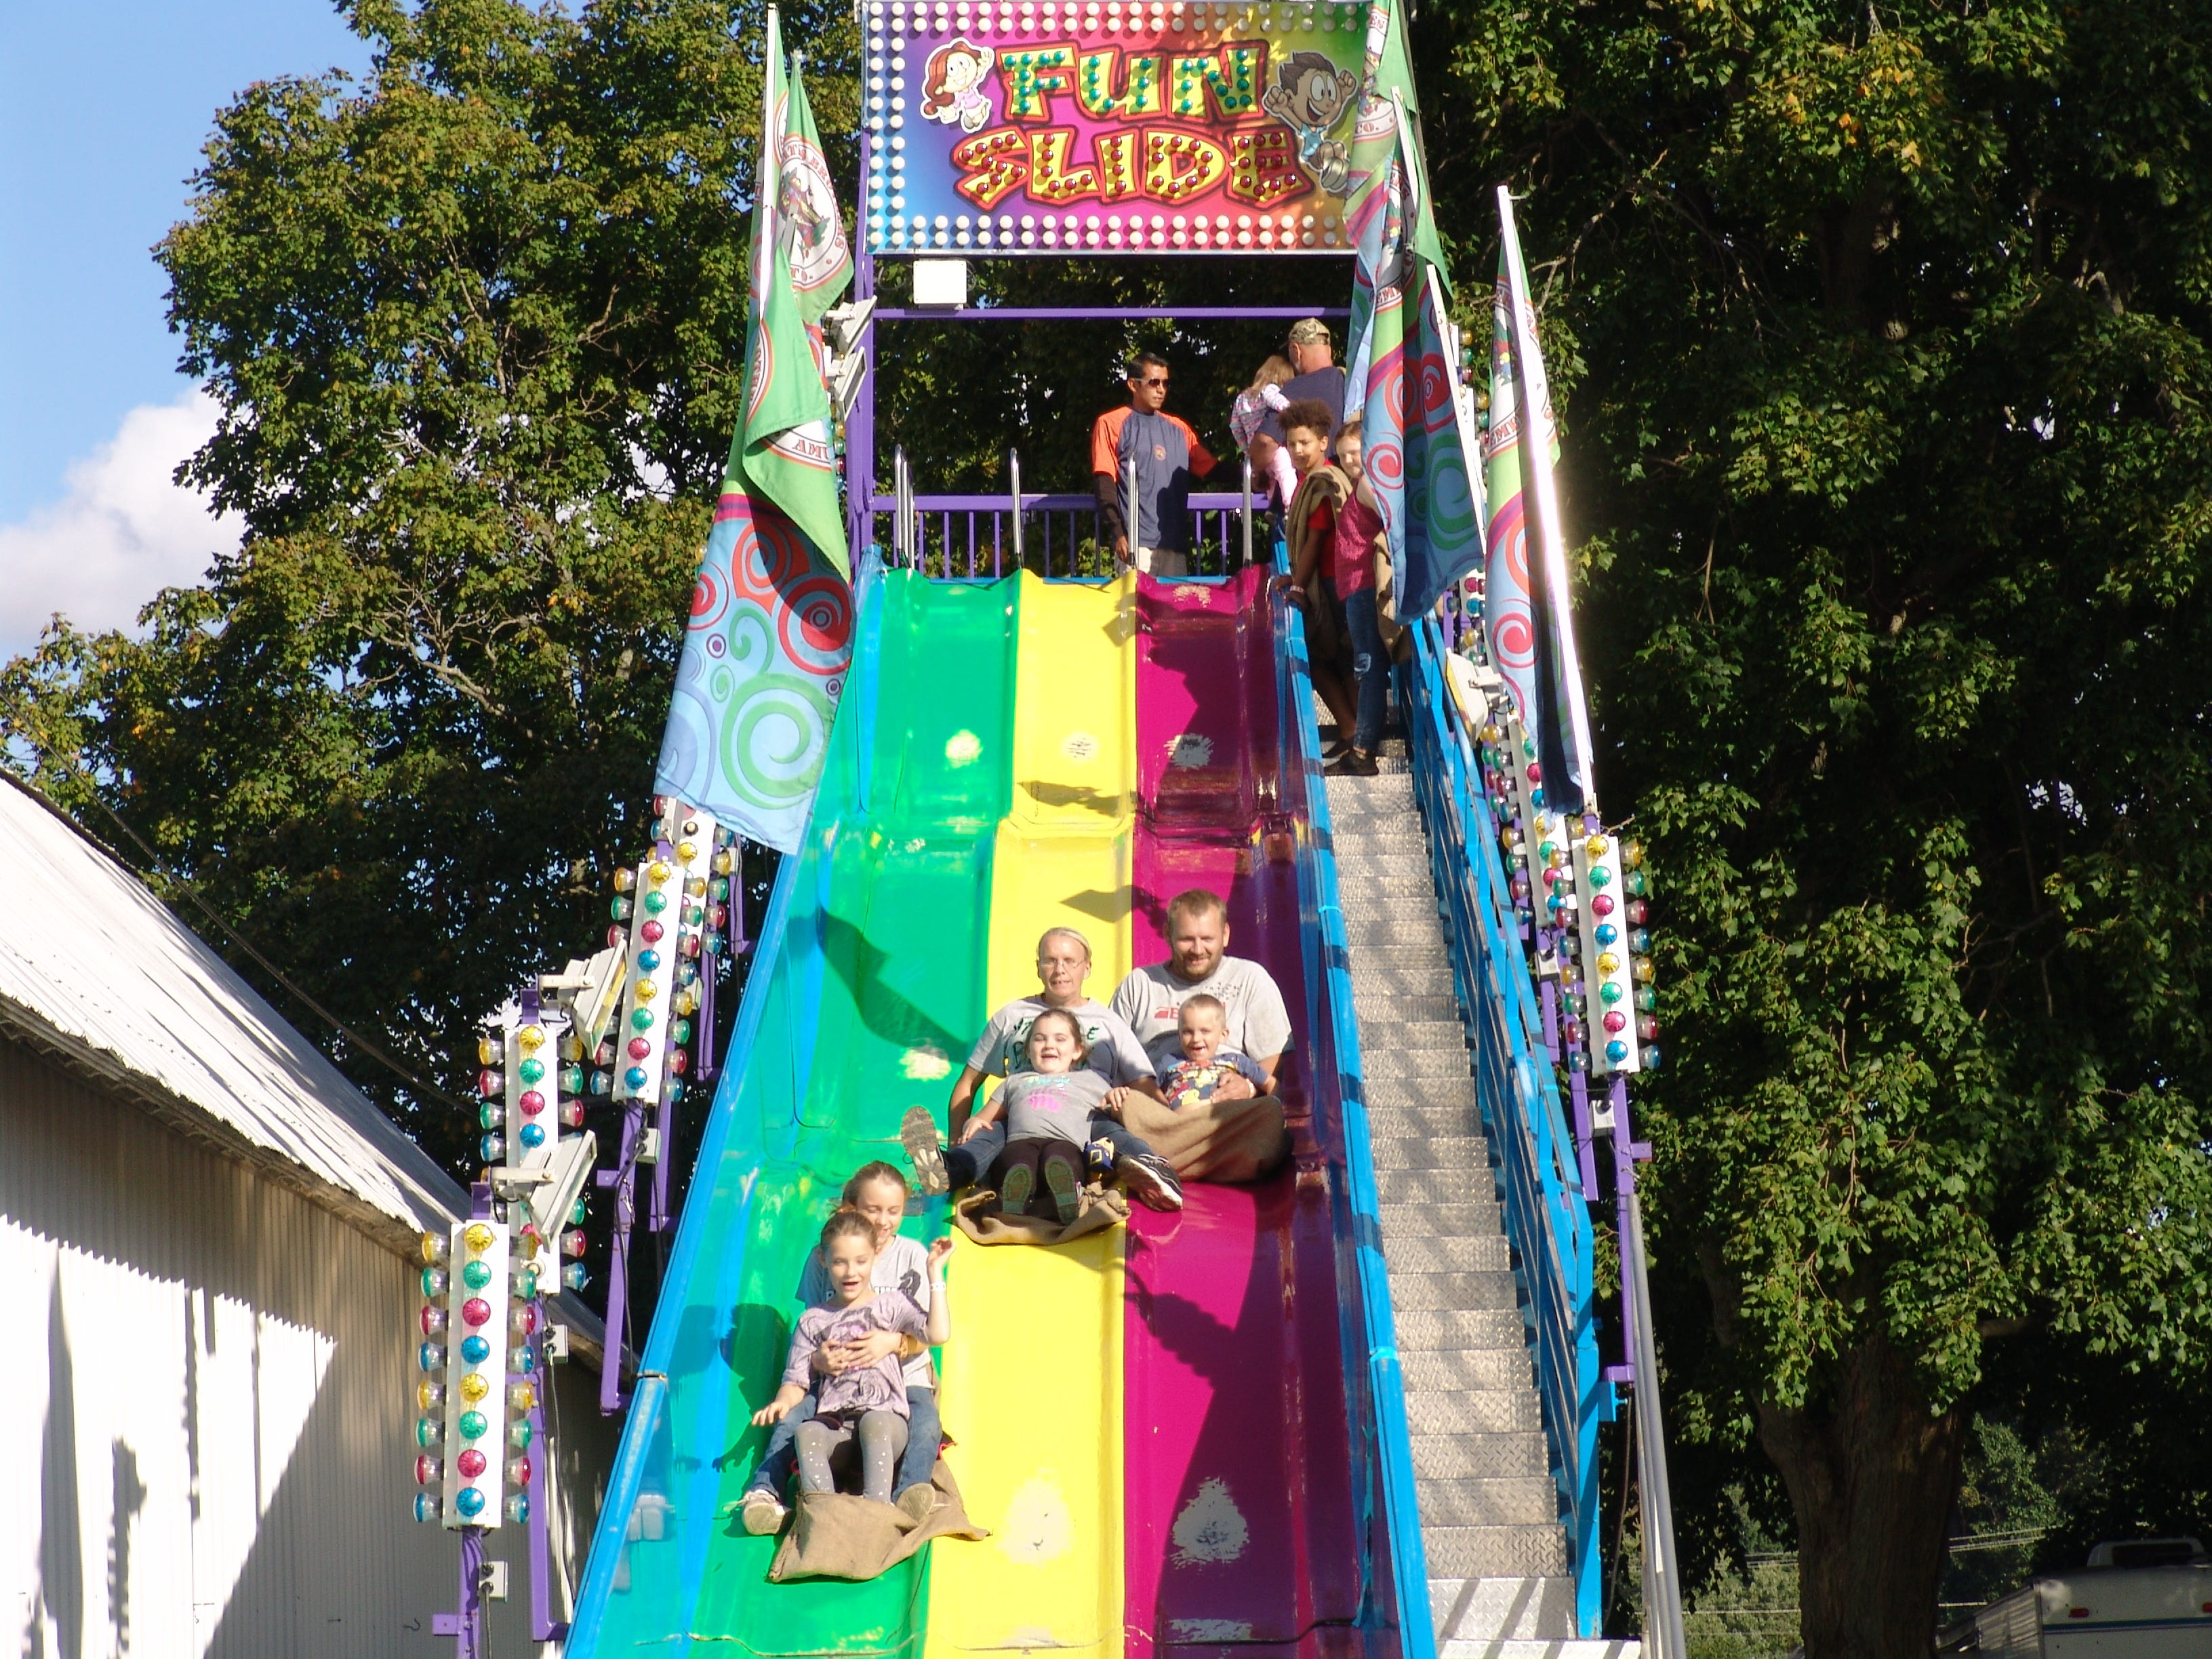 A group of fair-goers take a ride on the Fun Slide Saturday evening at the Coshocton County Fair.